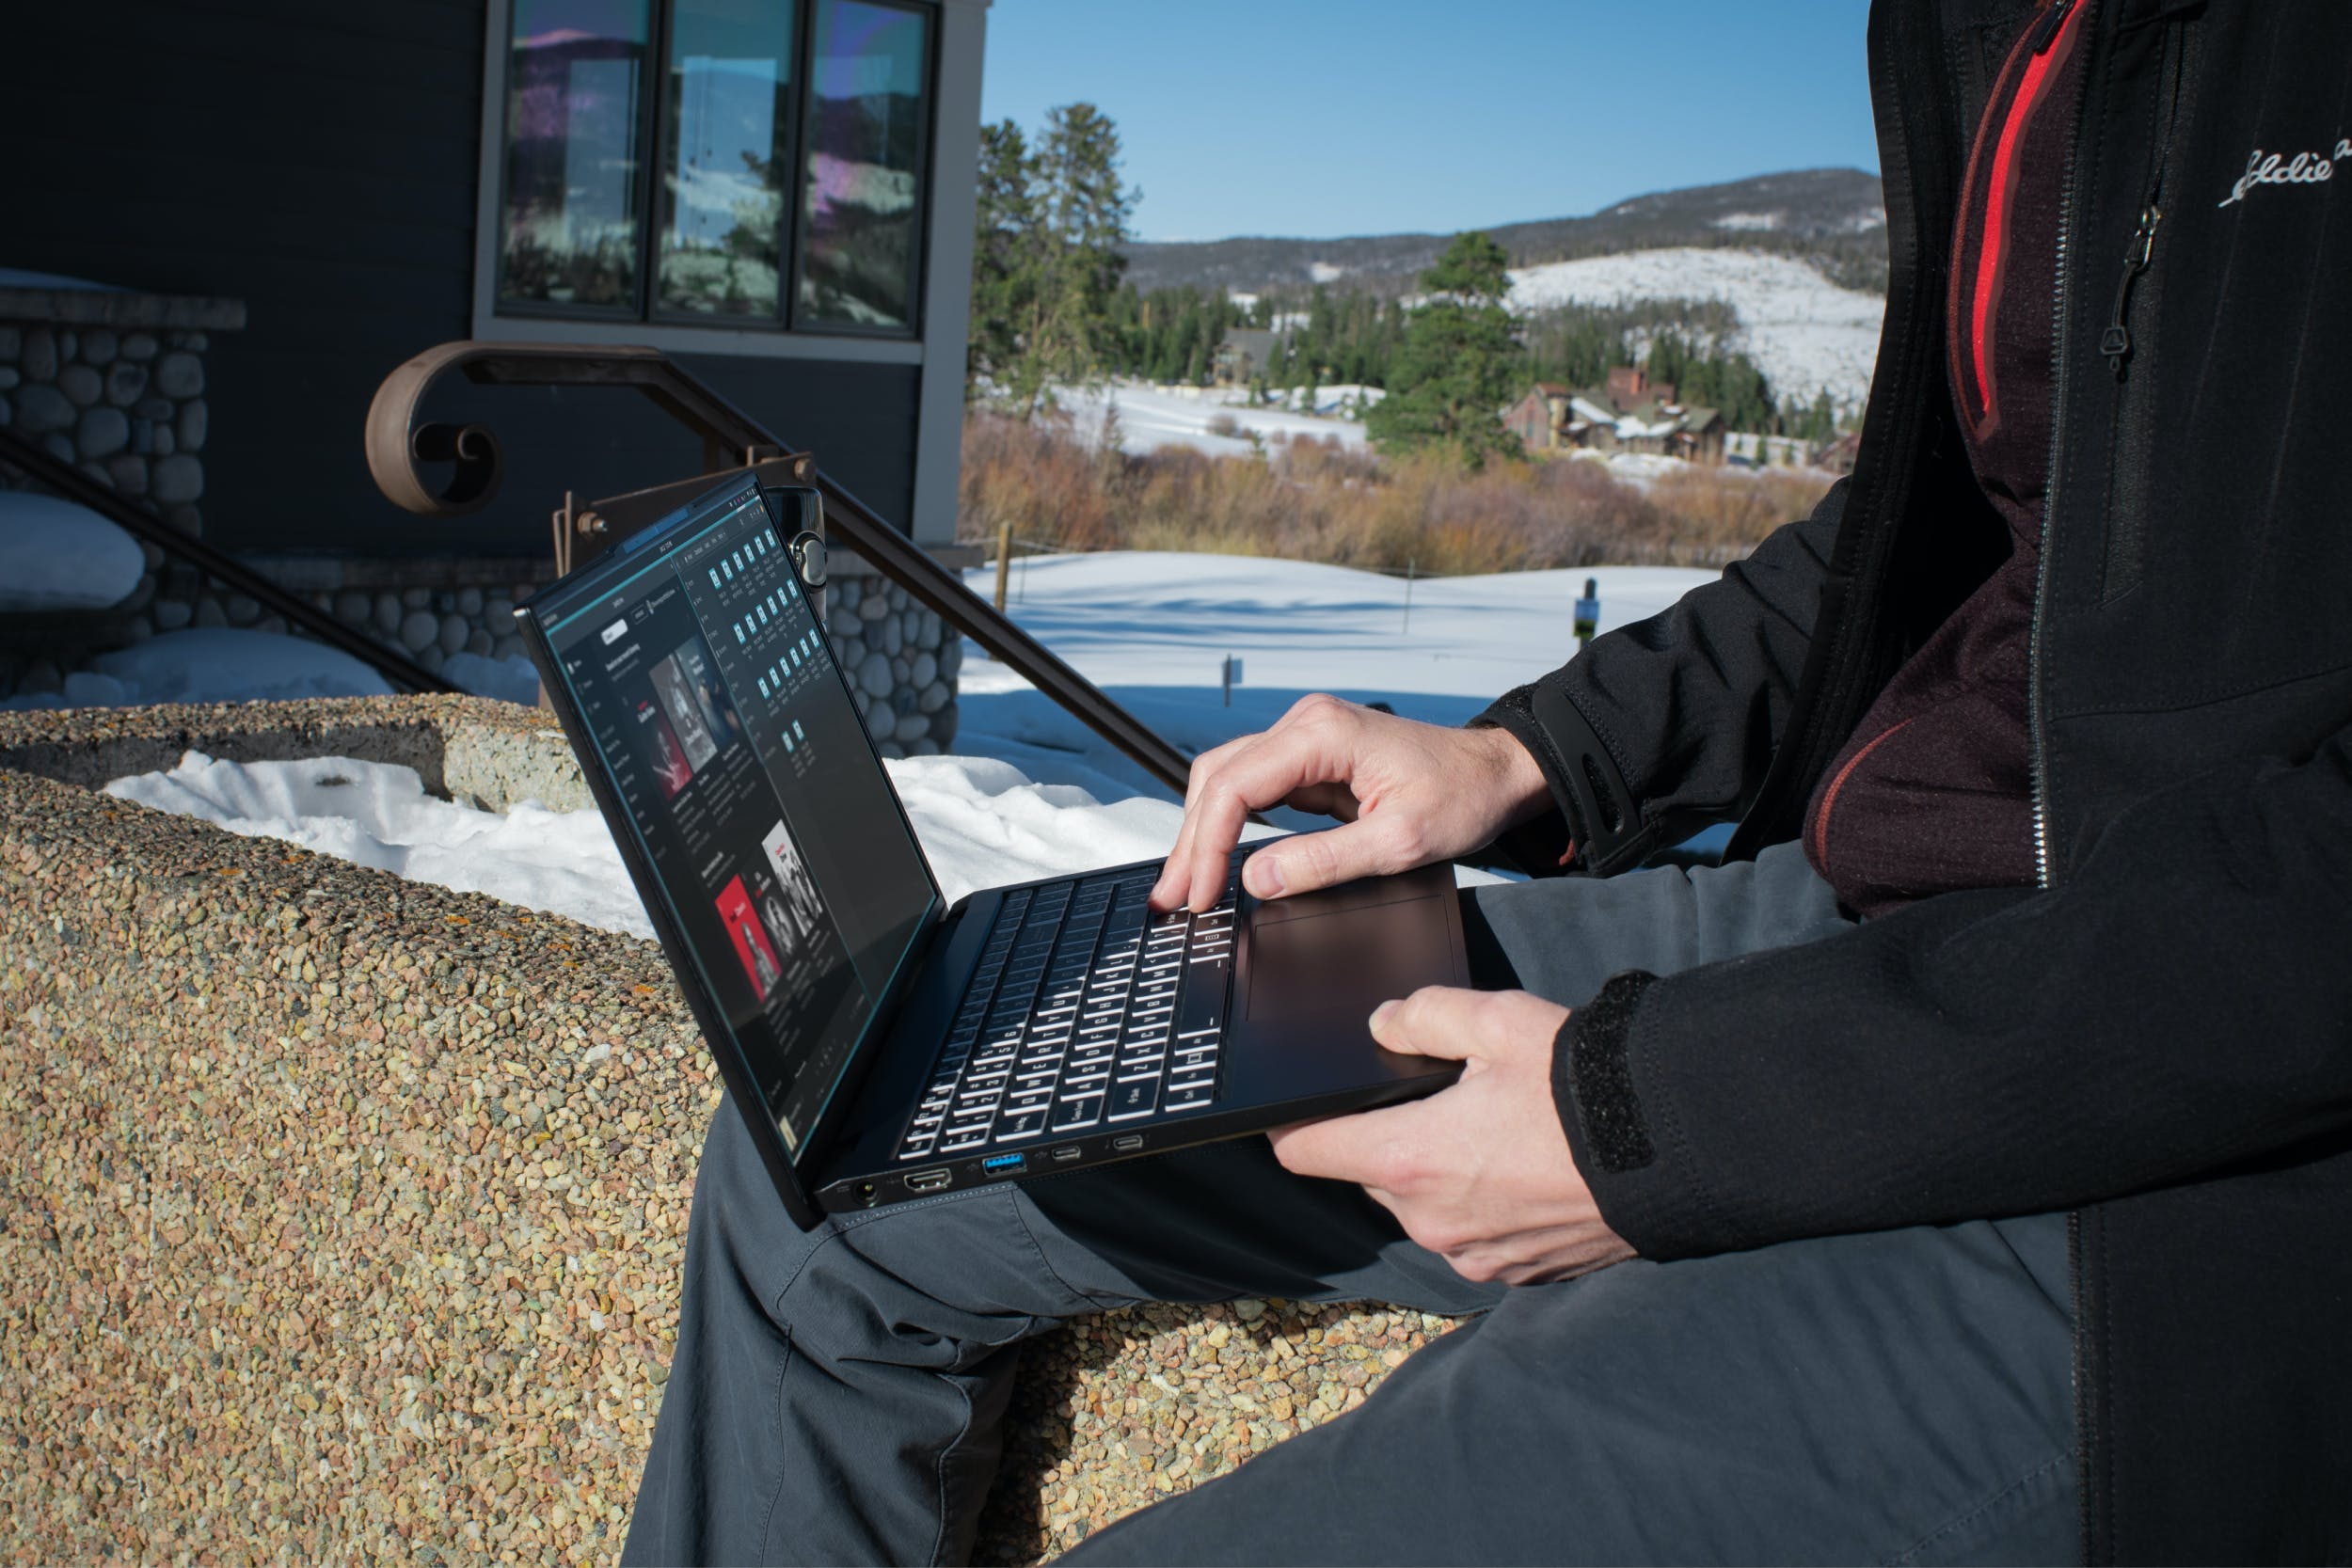 A person using the Darter Pro laptop in a snowy park.